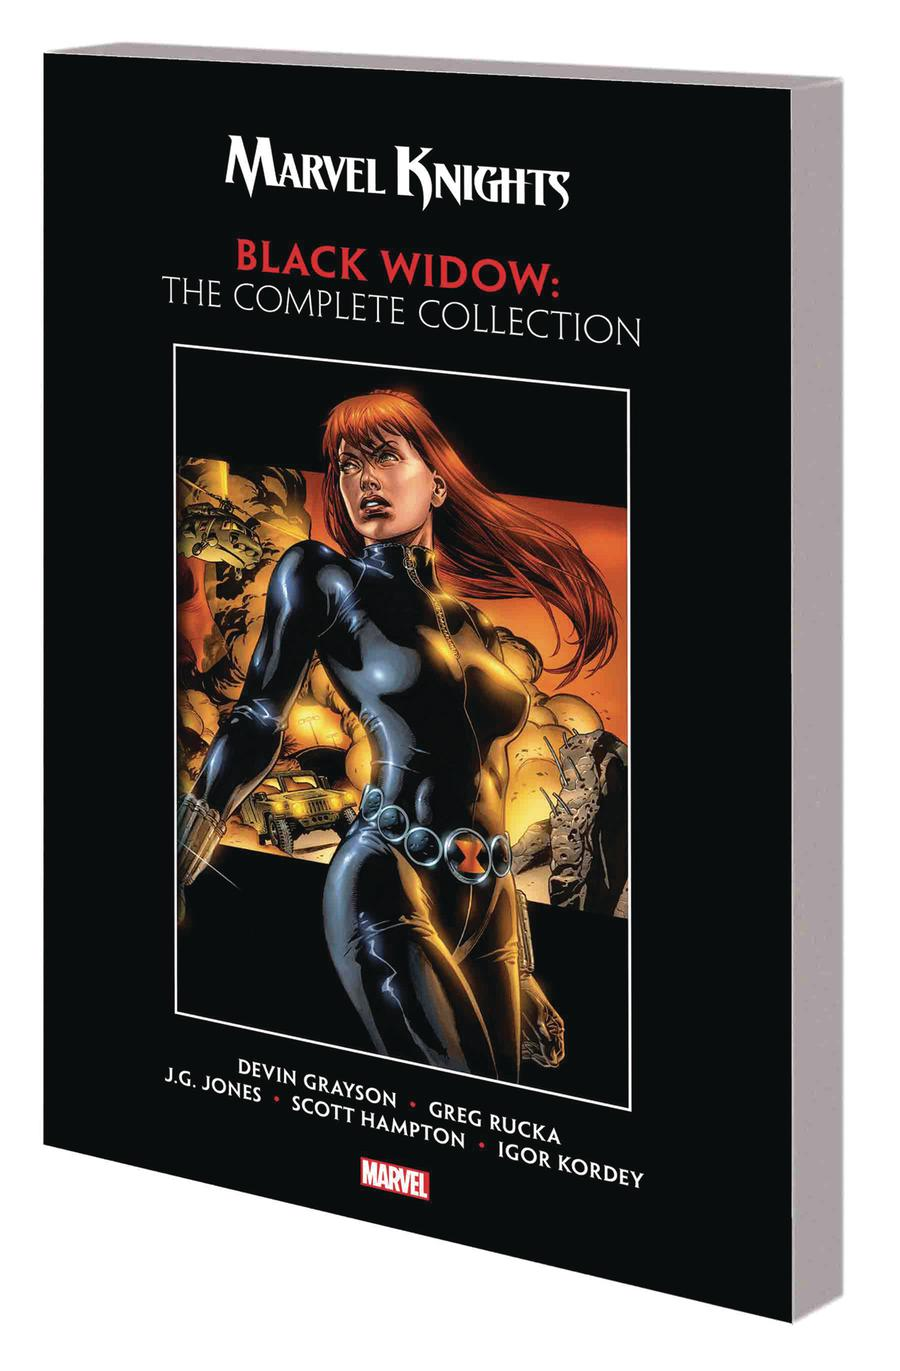 Marvel Knights Black Widow By Devin Grayson & Greg Rucka Complete Collection TP